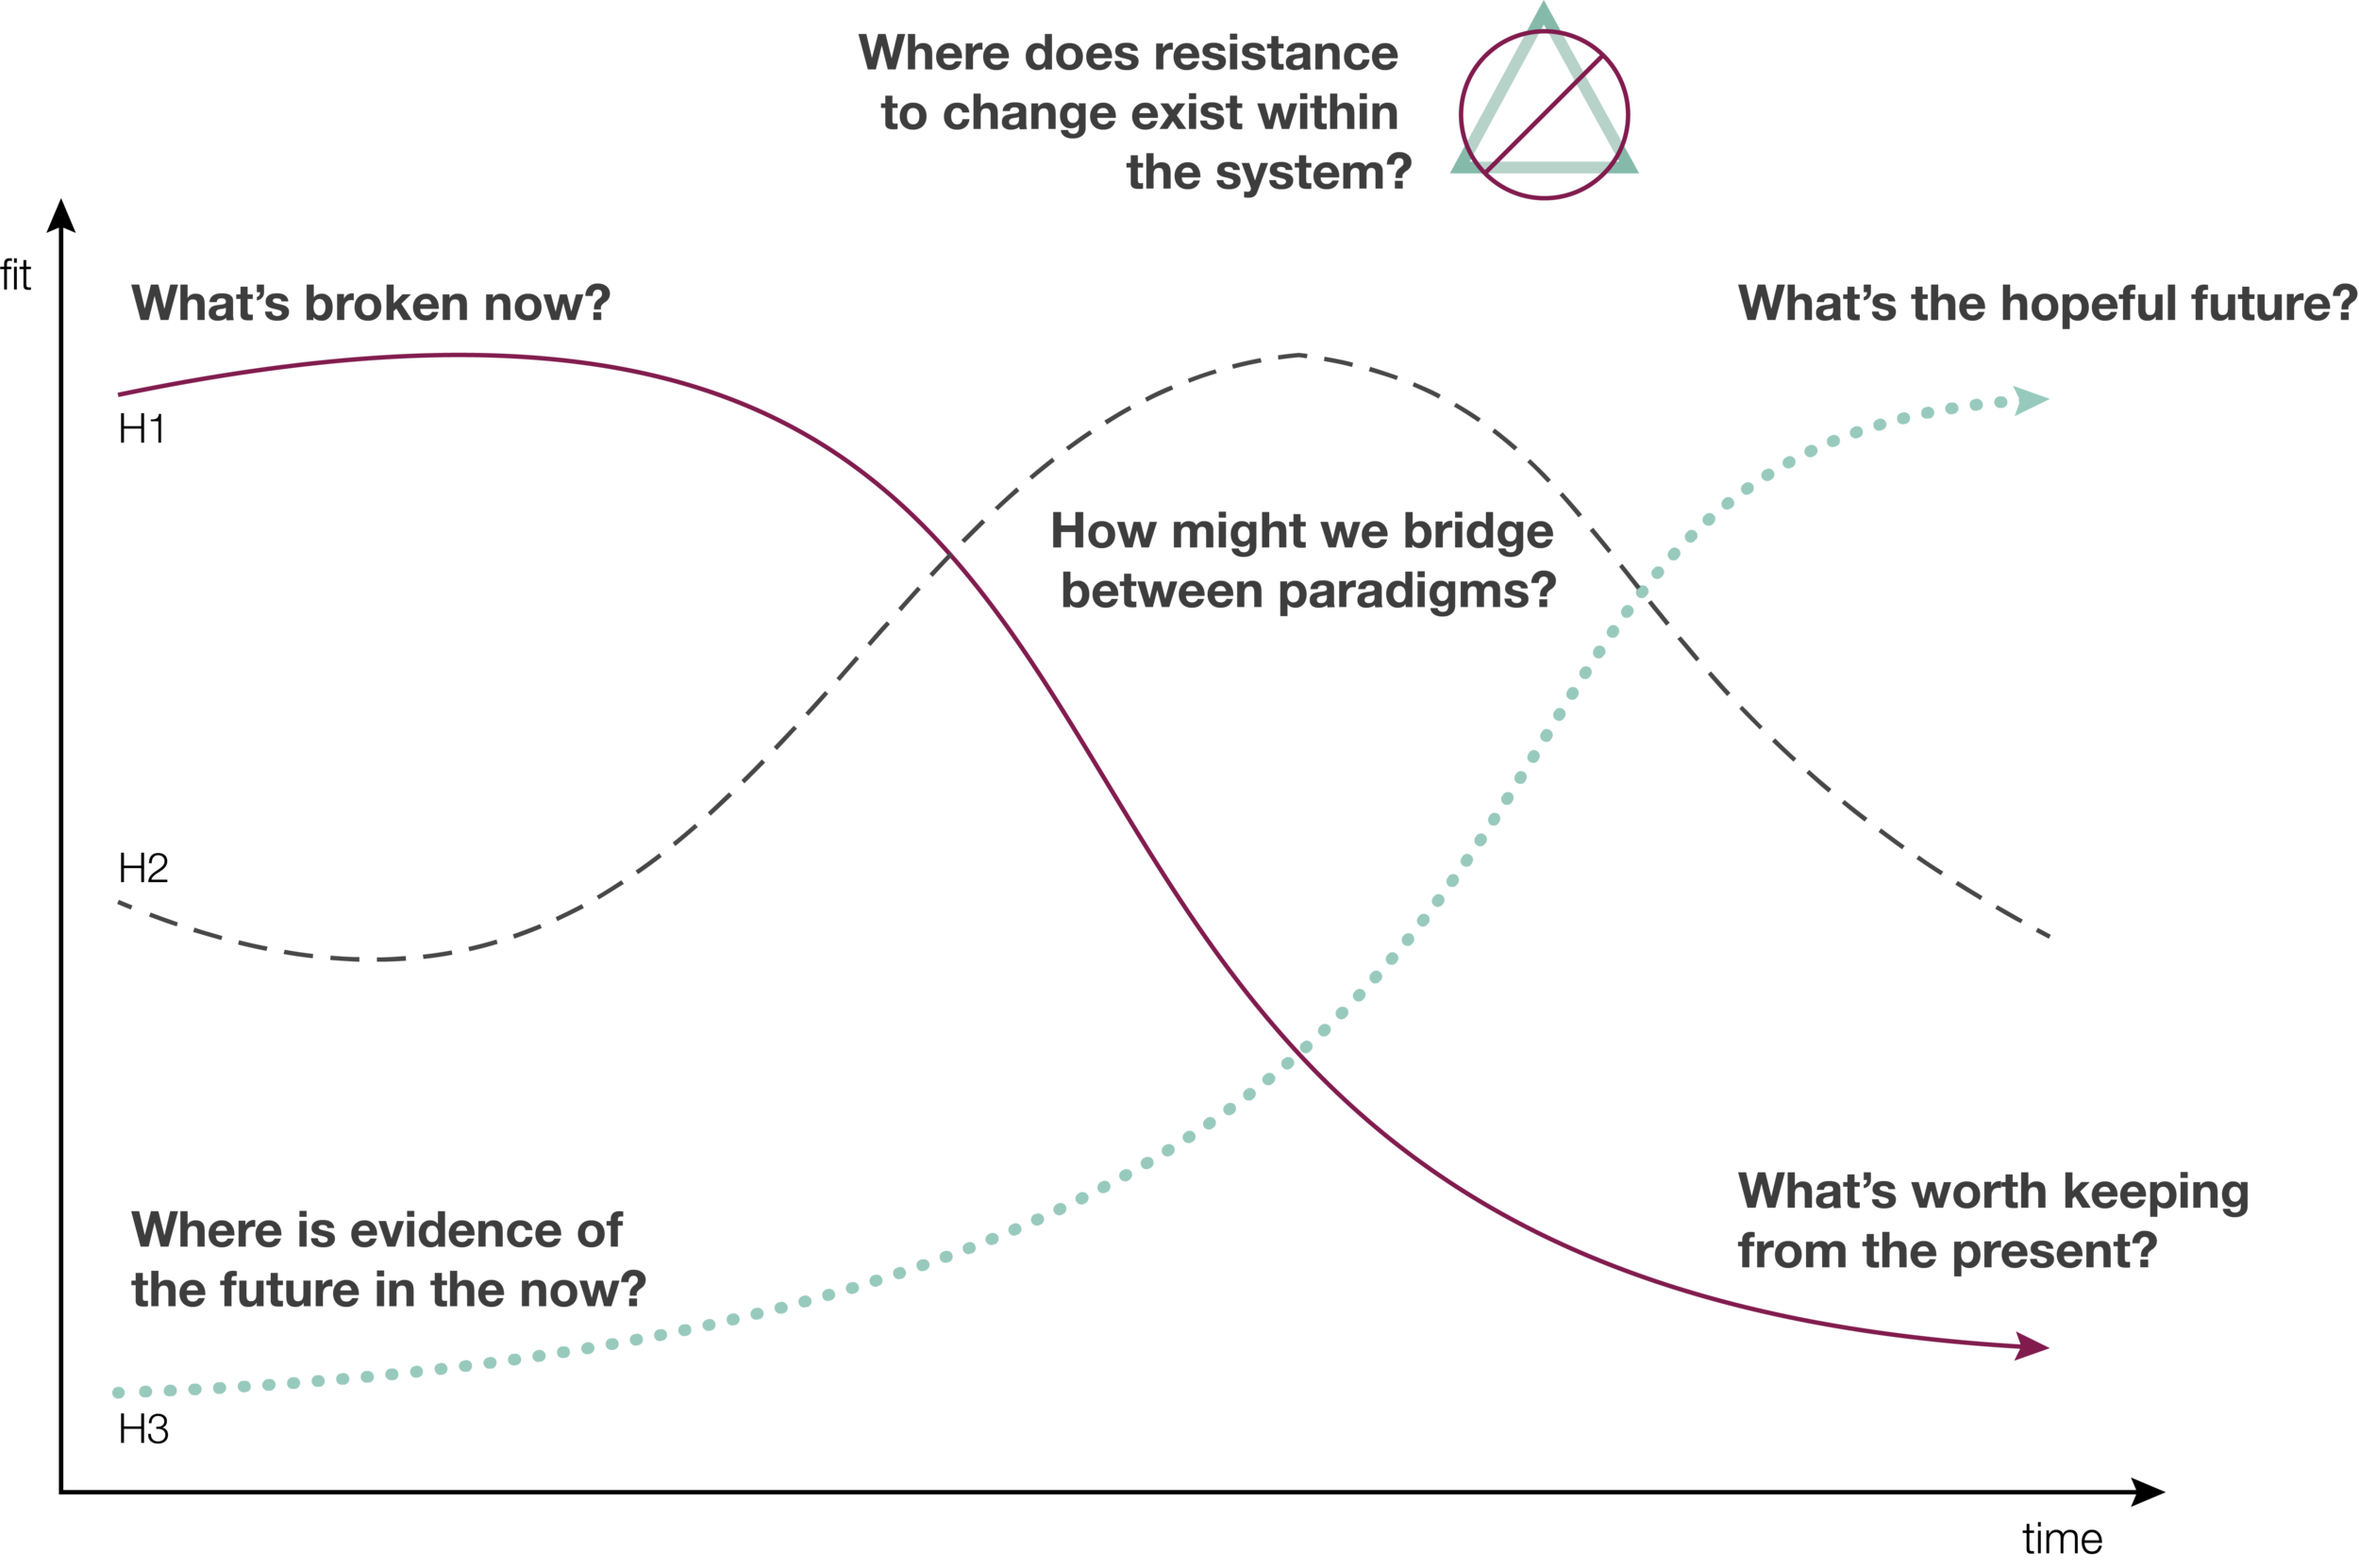 The Three Horizons Model, adapted from Curry and Hodgson (2008)